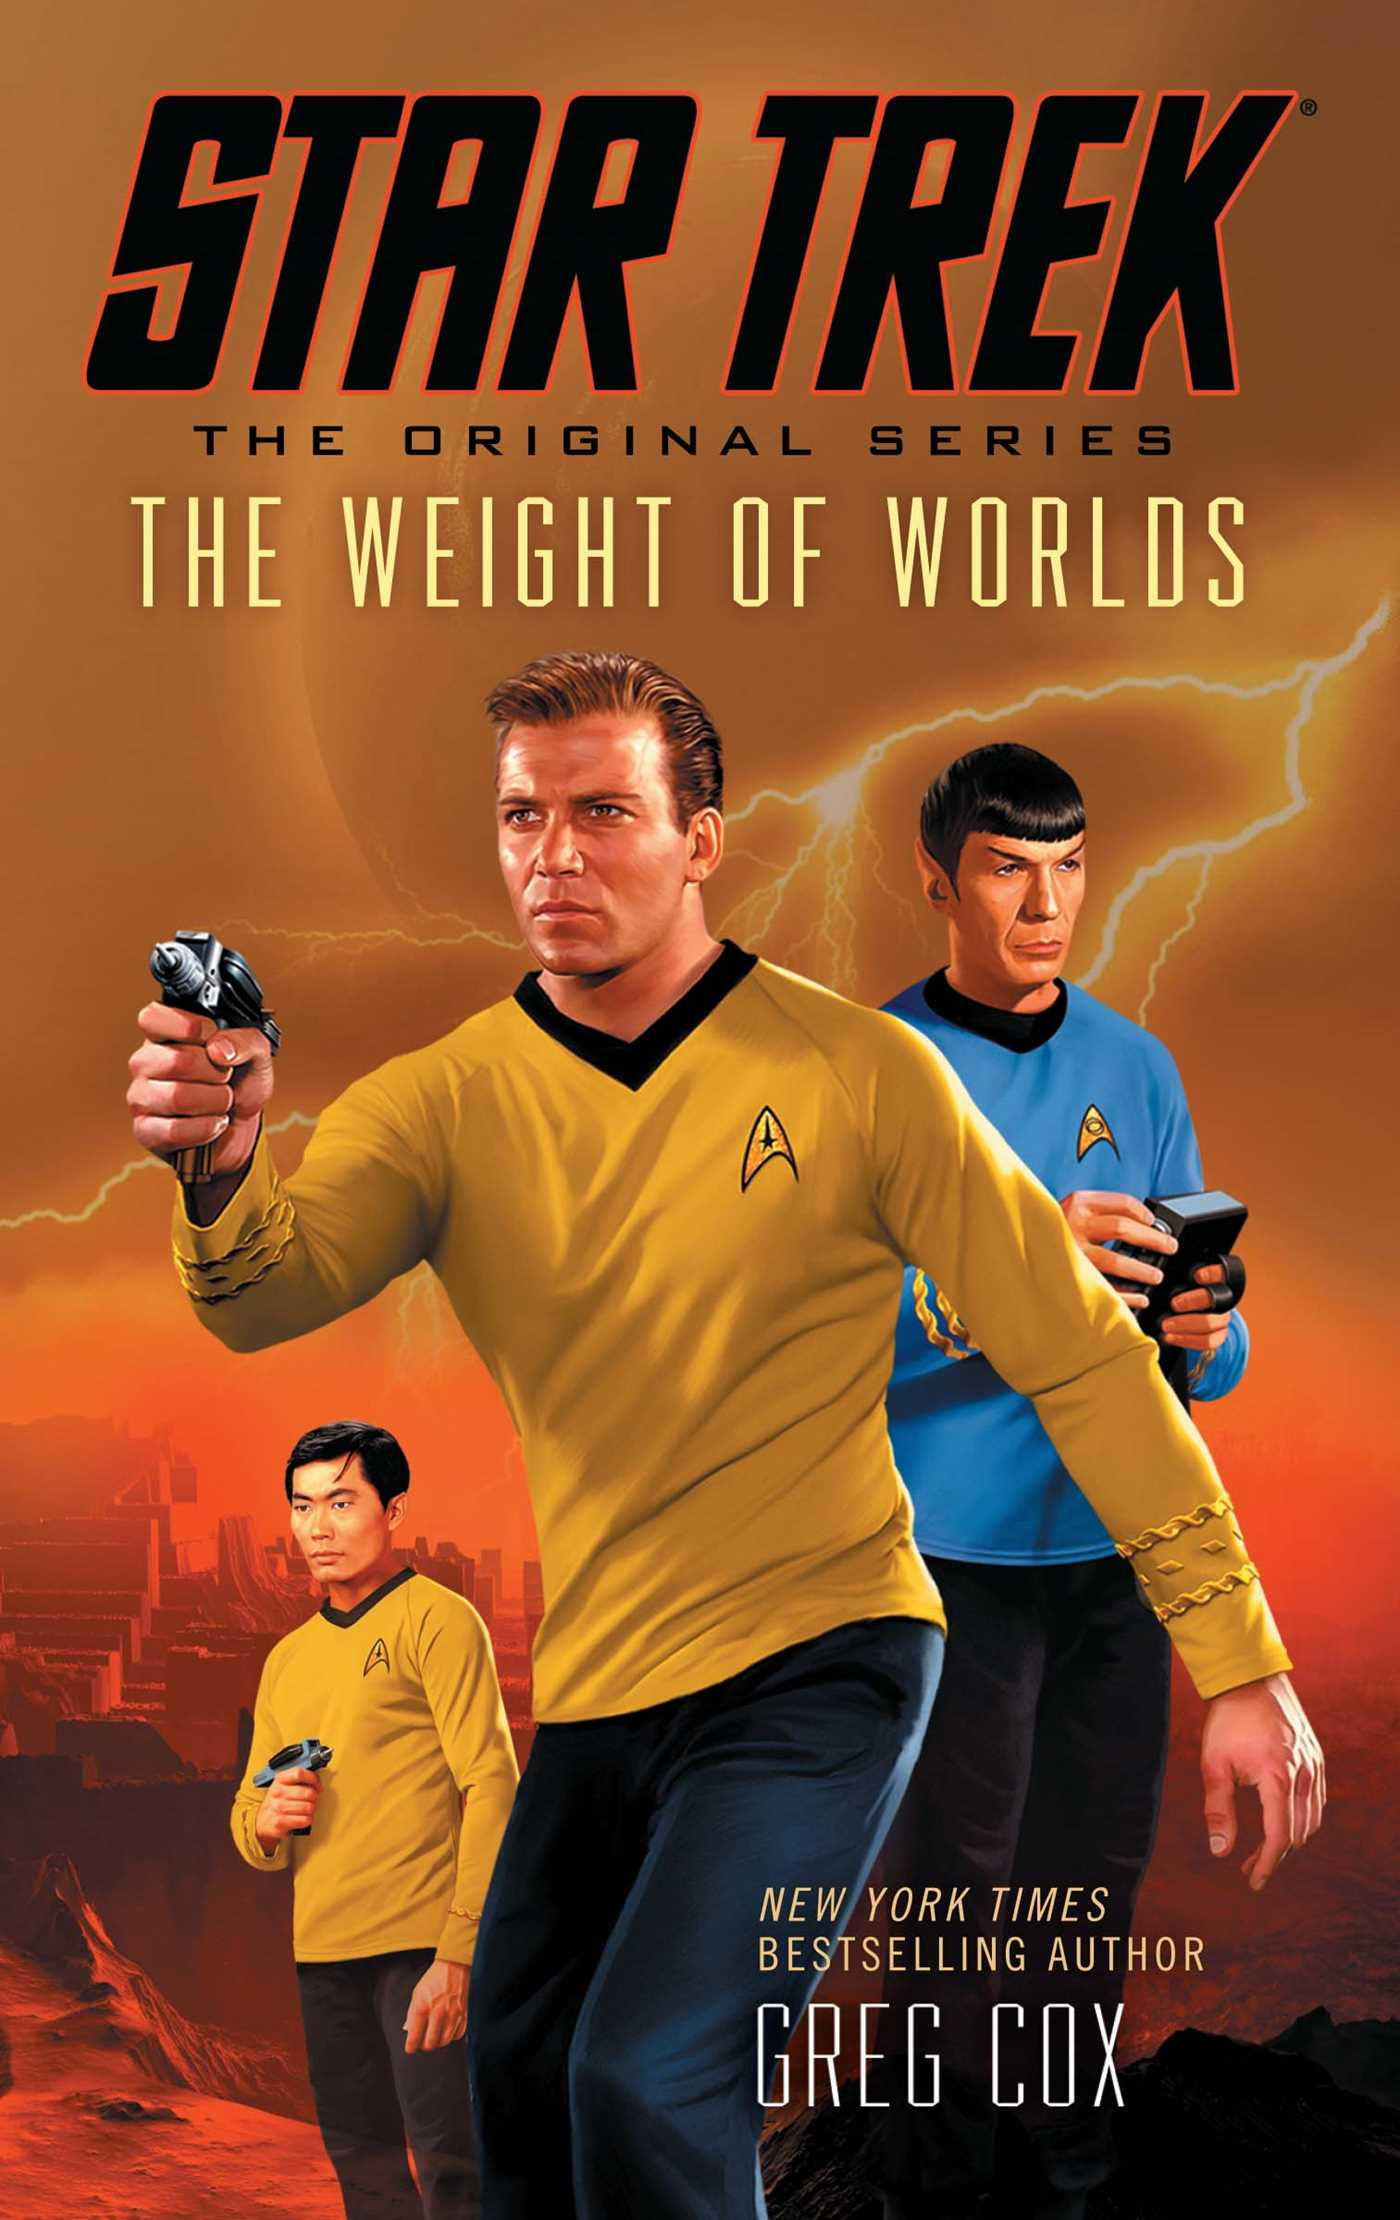 Star trek the original series the weight of worlds 9781476702858 hr